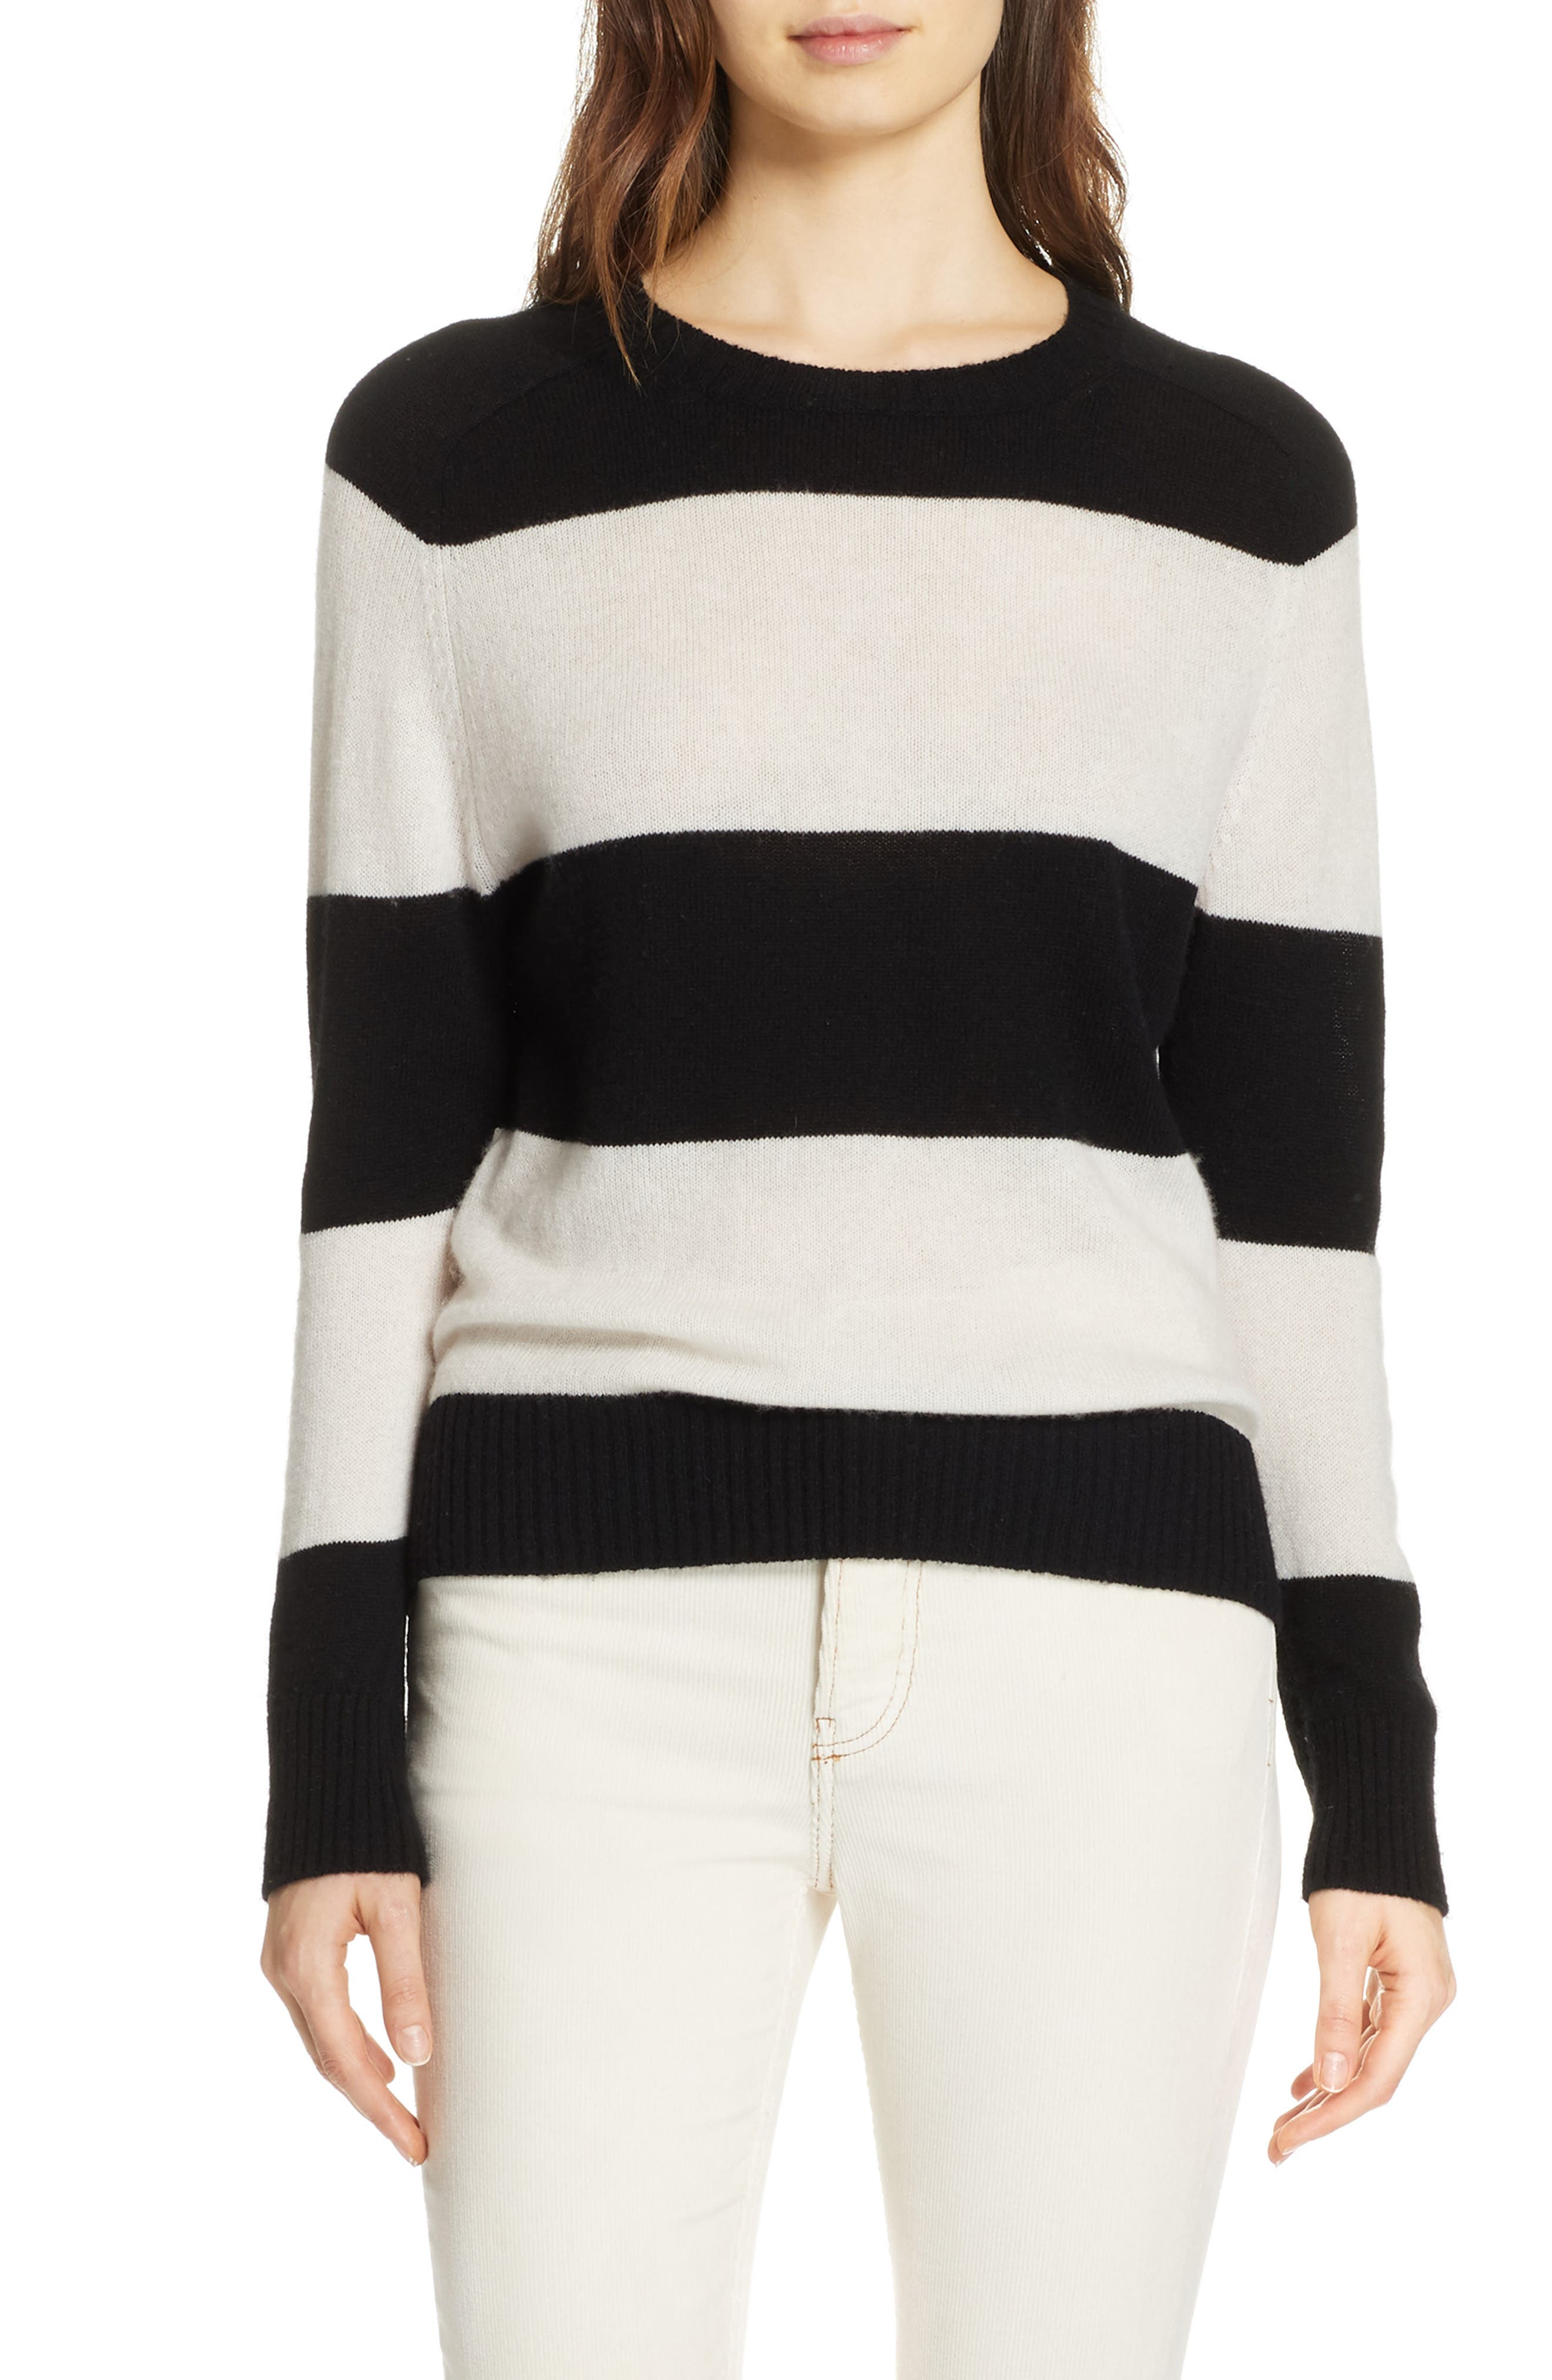 RE/DONE, Stripe Wool & Cashmere Sweater, Main thumbnail 1, color, BLACK/ IVORY